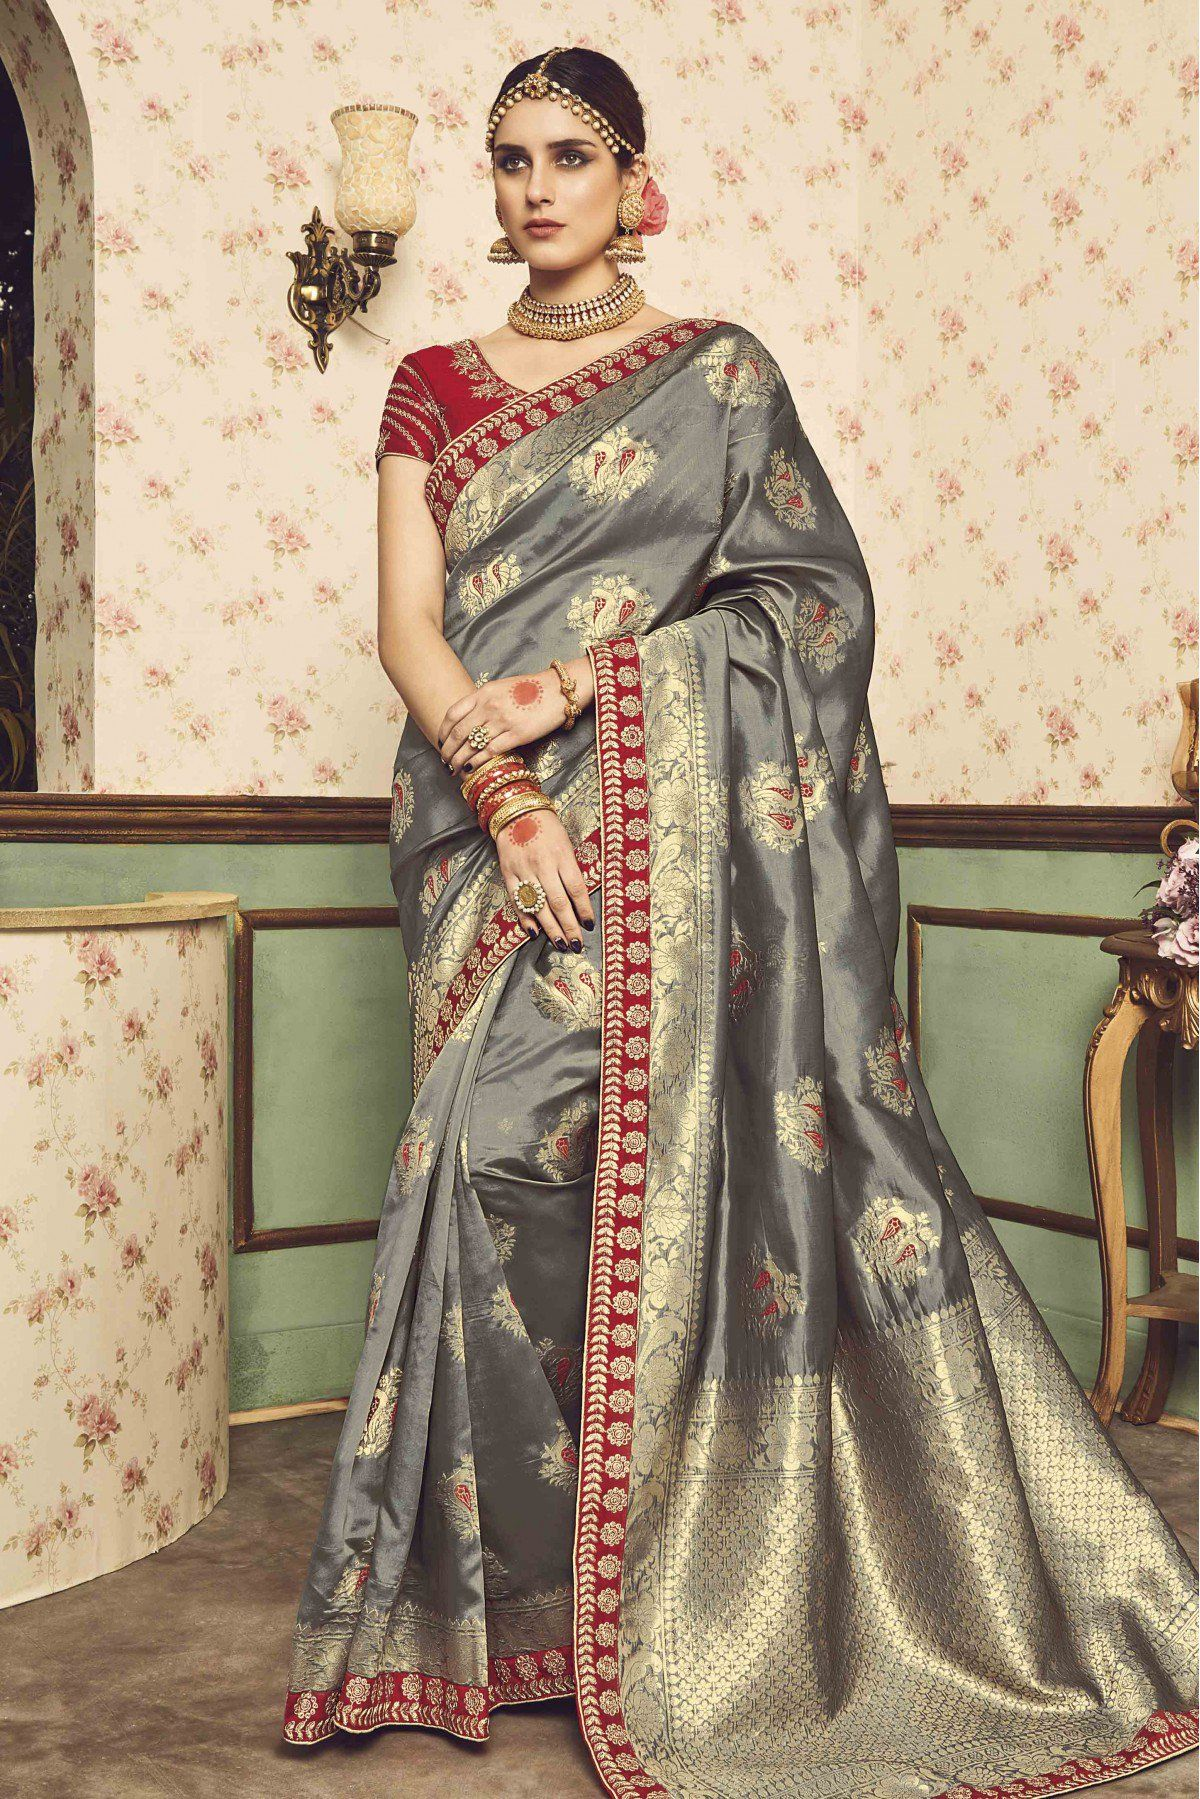 ef489d5e65a4 Buy Silk Saree In Grey Colour for women   ninecolours.com. Worldwide Free  Shipping Available!